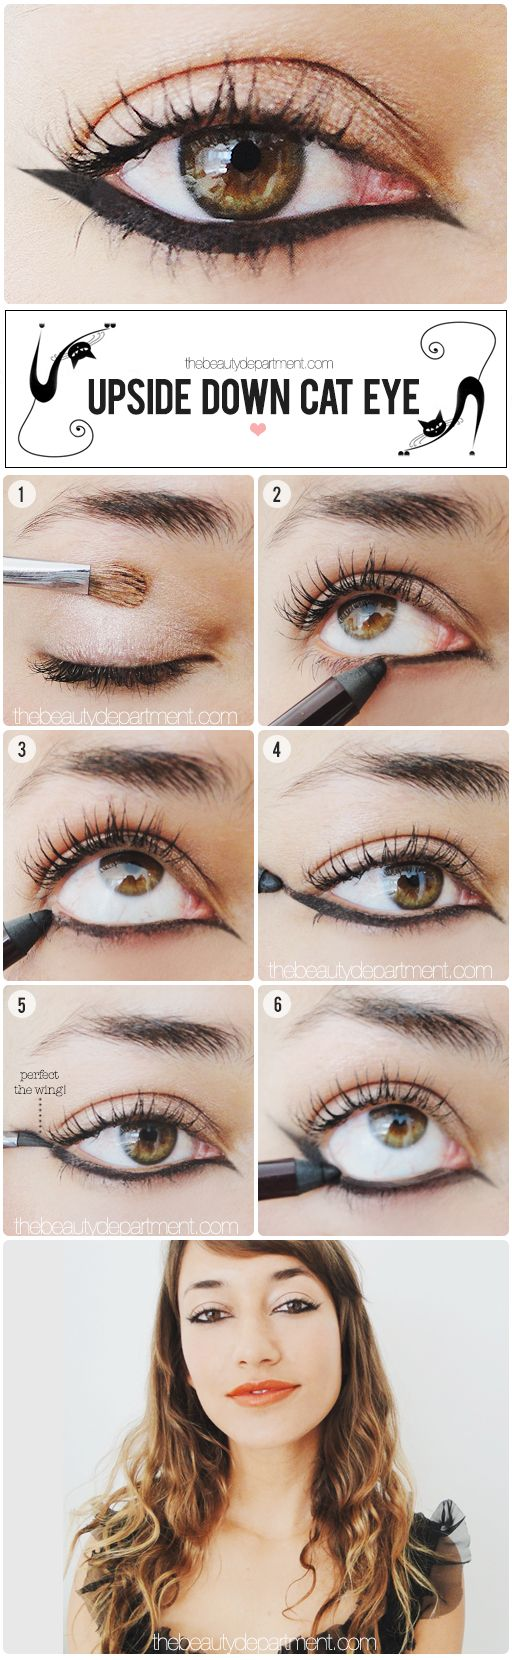 """thebeautydepartment.com upside down cat eye - I REALLY like this, but it took me about a year to get down the normal """"cat eye""""  -  I can only imagine how long THIS STYLE will take me! lol"""